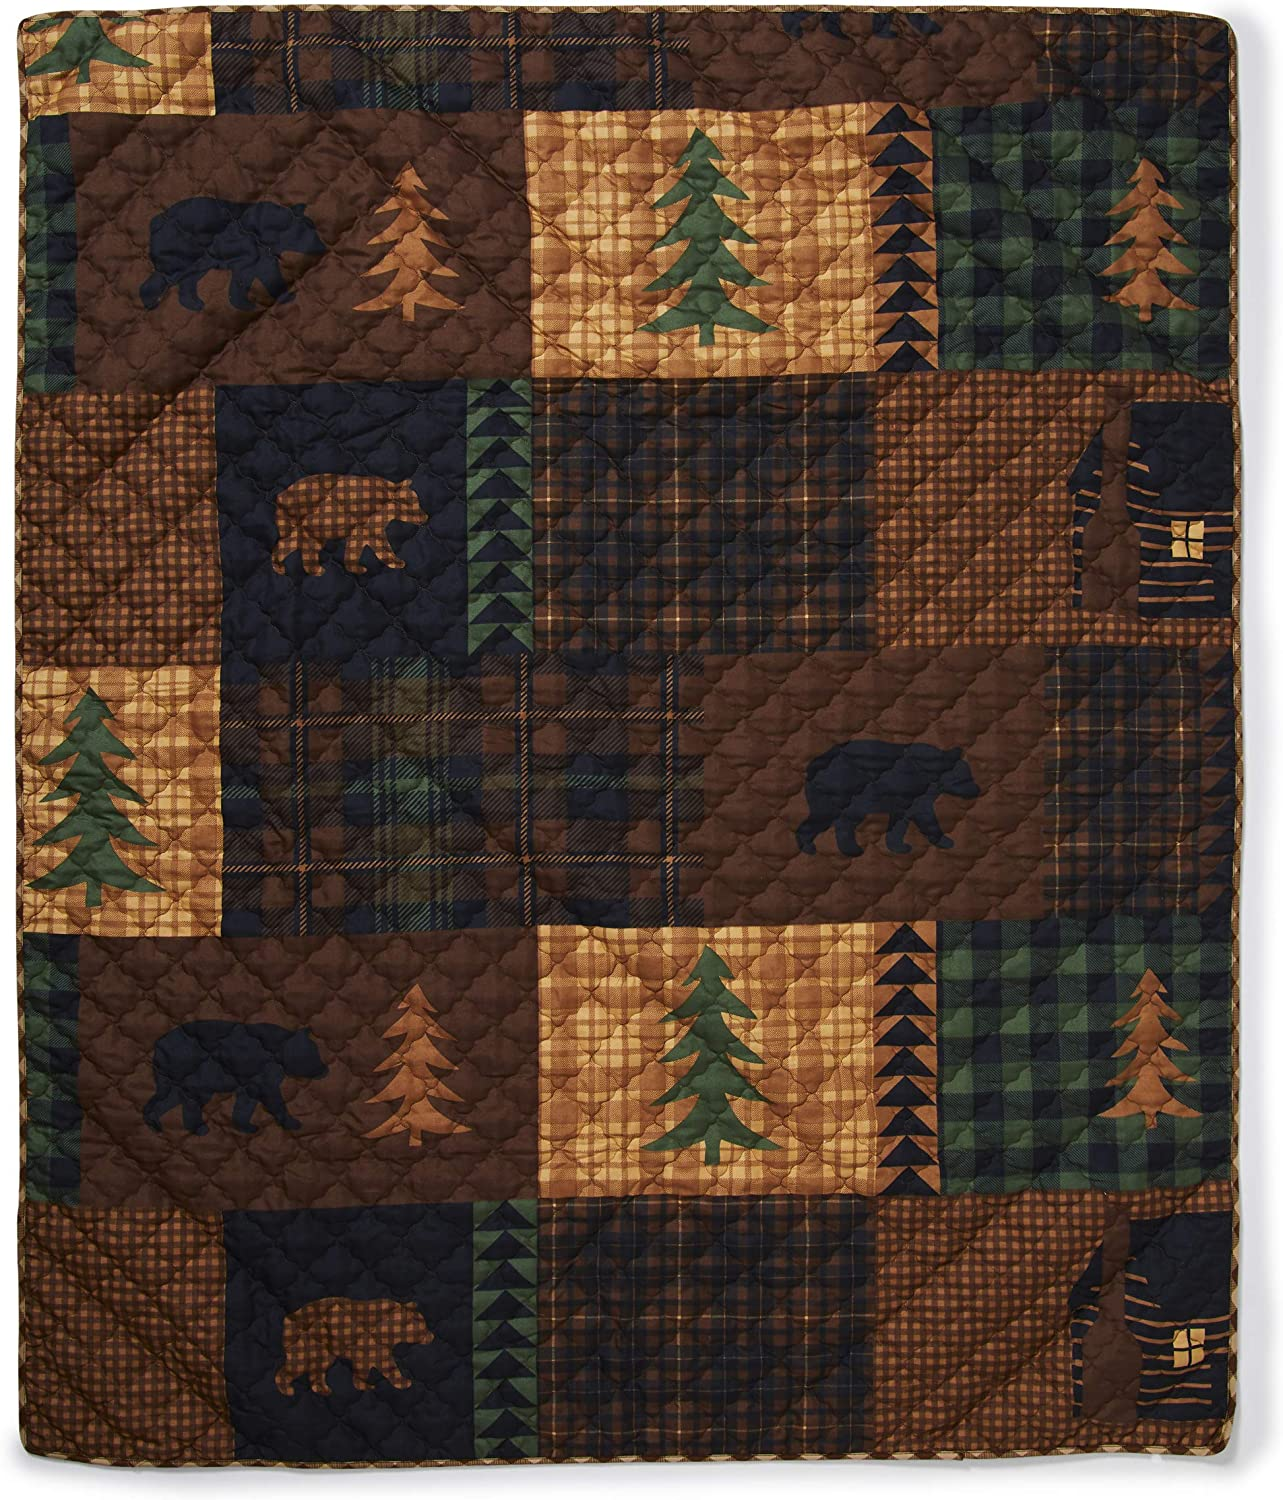 Throw Blanket - Brown Bear Cabin by Donna Sharp - Lodge Decorative Throw Blanket with Square Patchwork